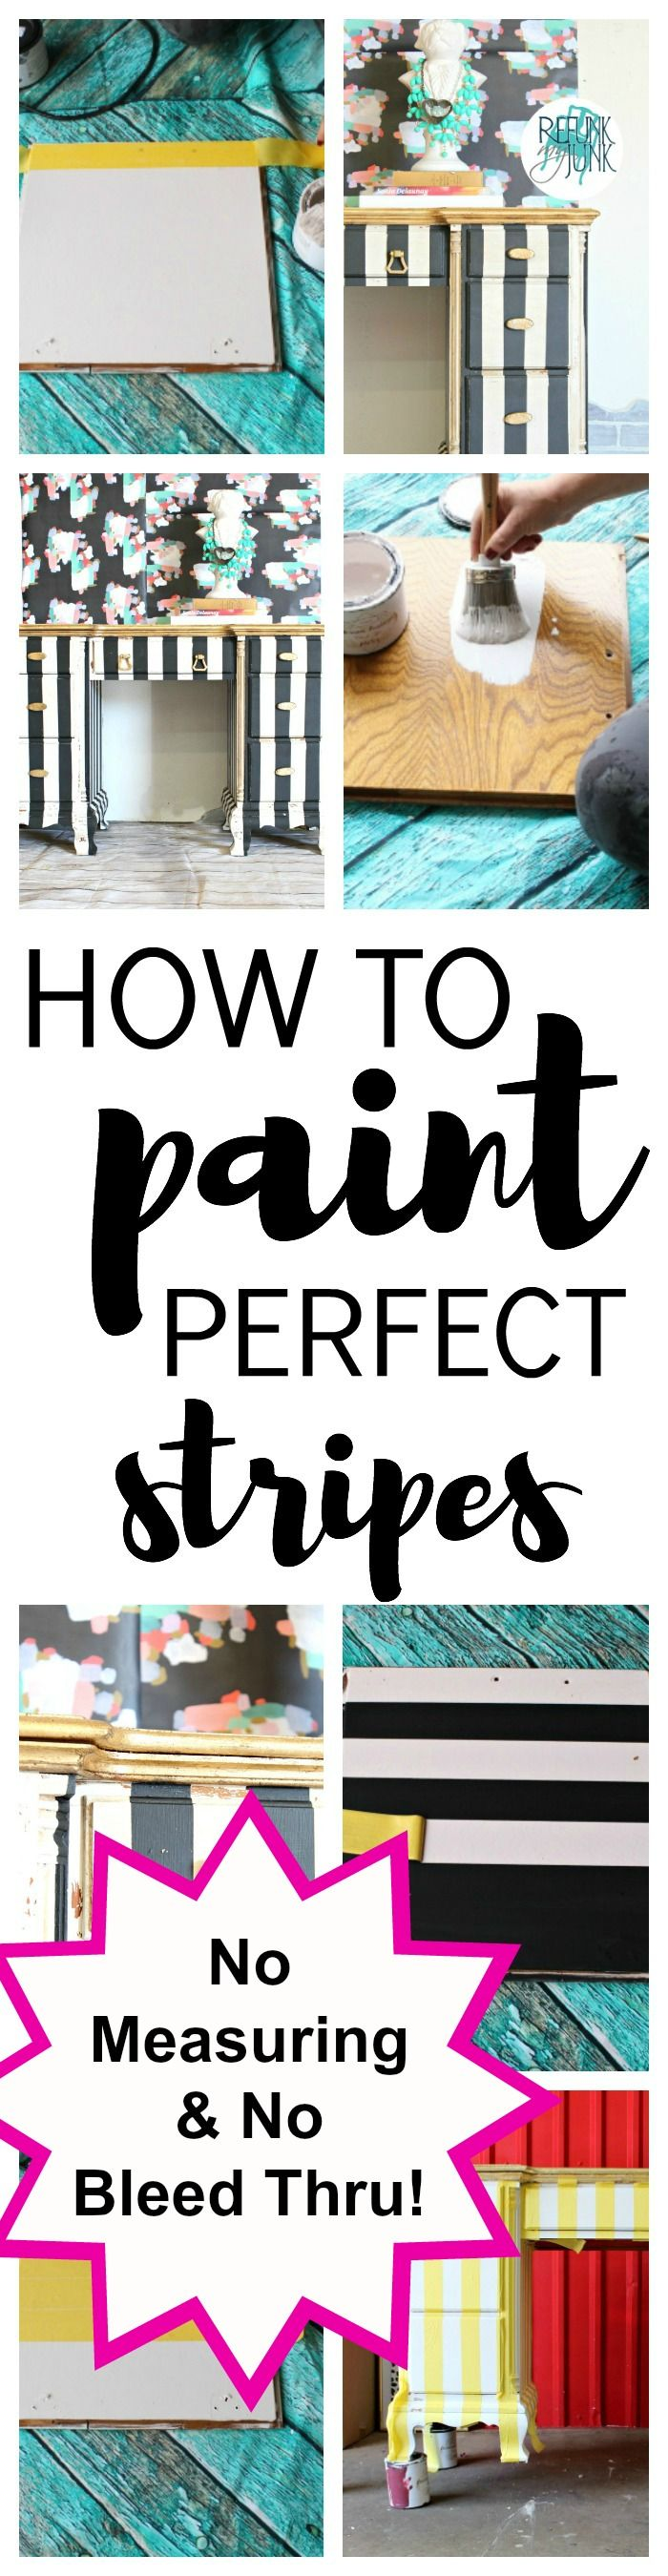 """How to paint the perfect stripes - One reader says """"I can't believe there is NO measuring and No bleed thru! Crazy!"""""""